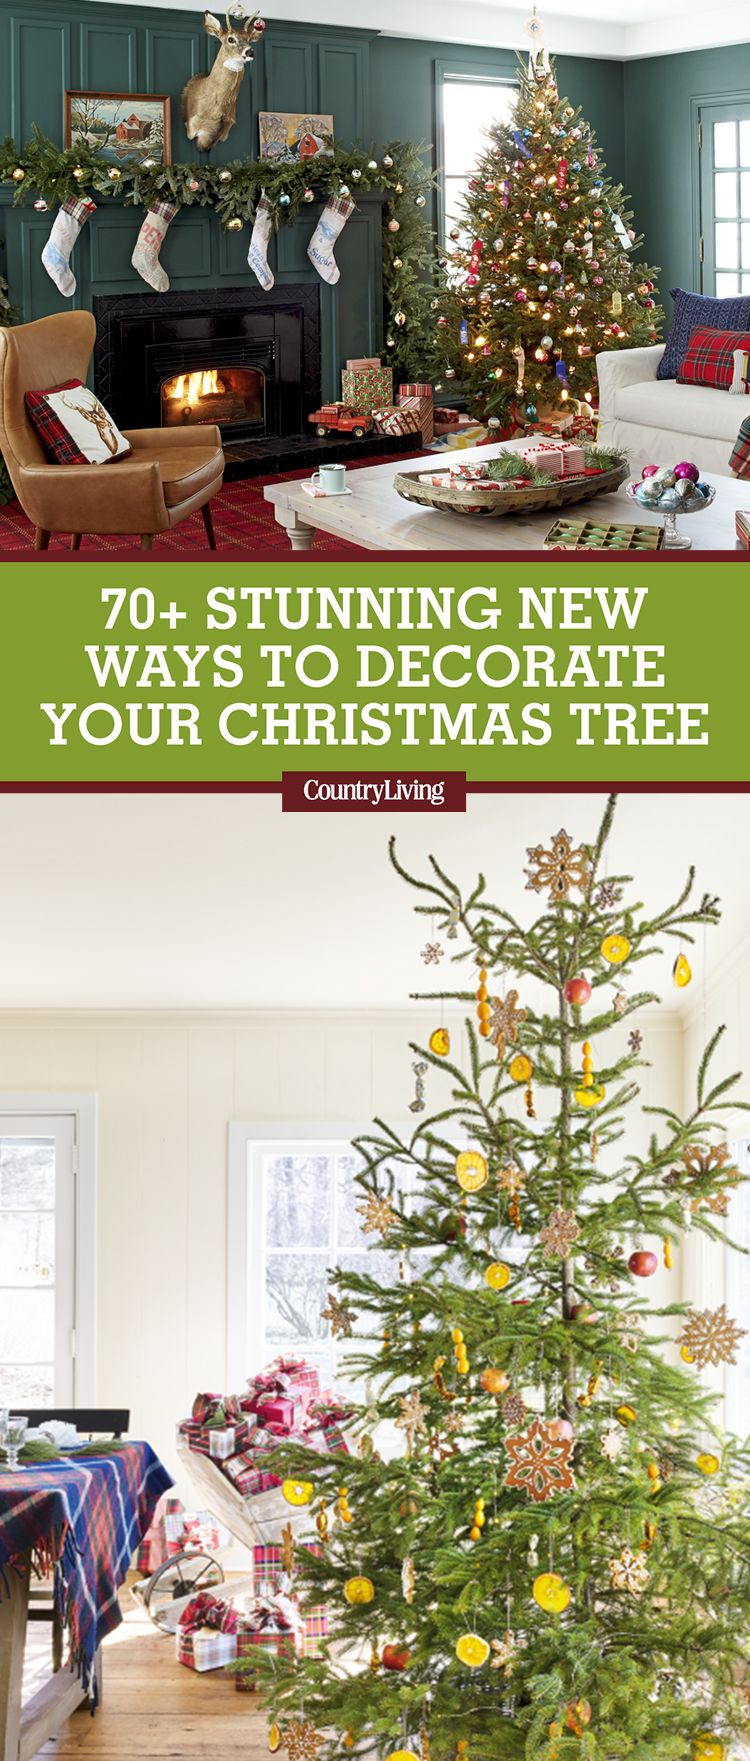 60 Best Christmas Tree Decorating Ideas